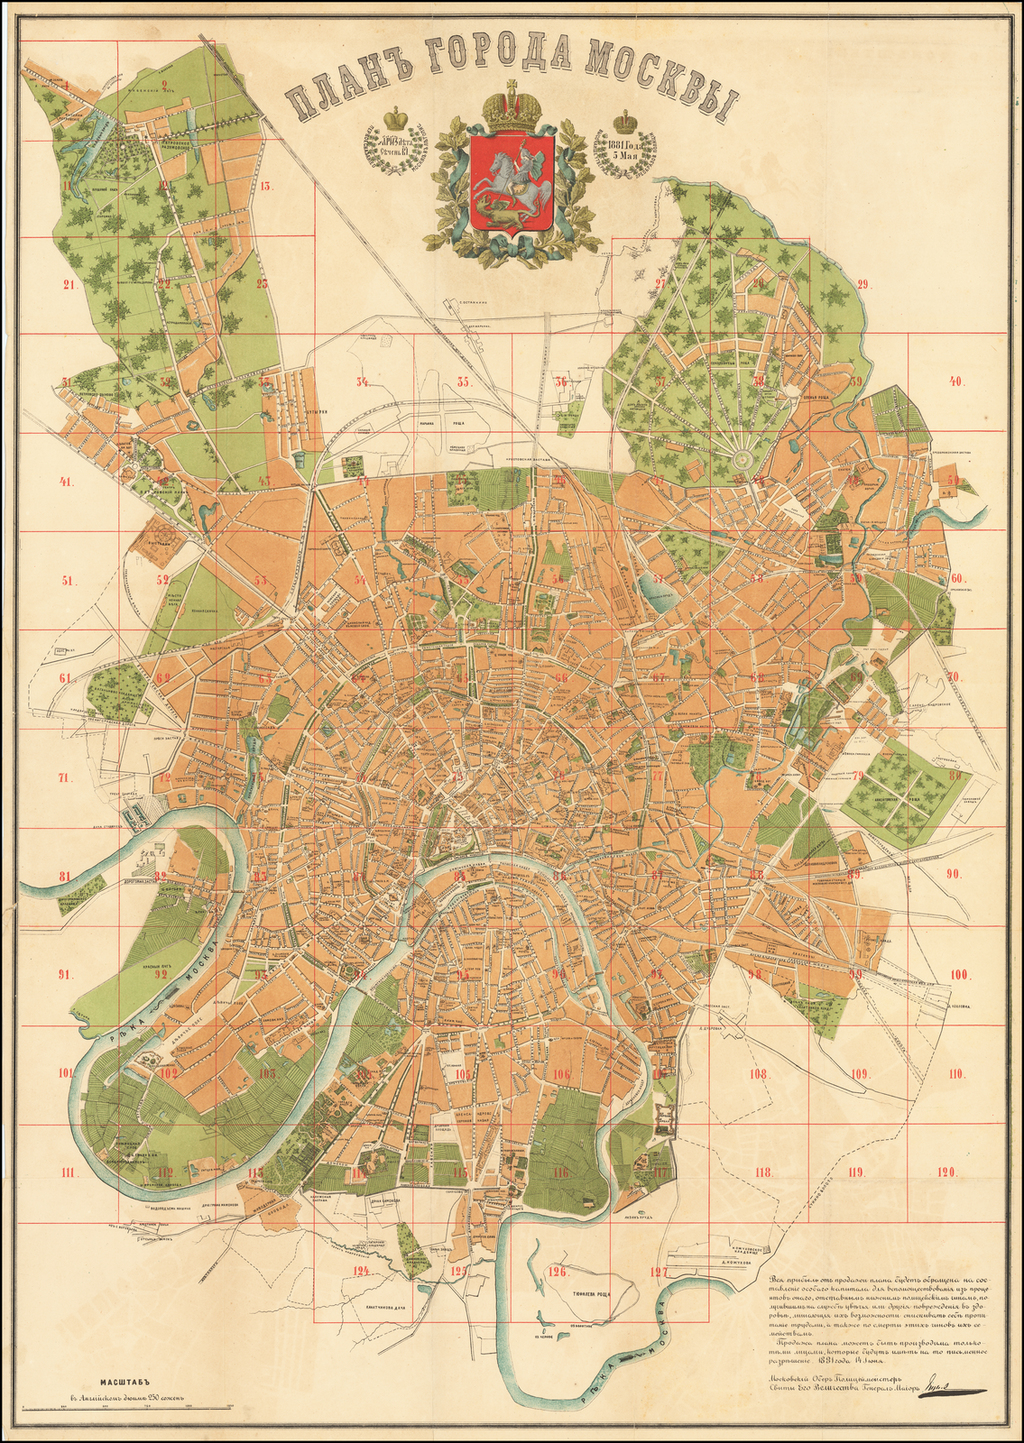 [Plan of the City of Moscow] Планъ Города Москвы  By Anonymous